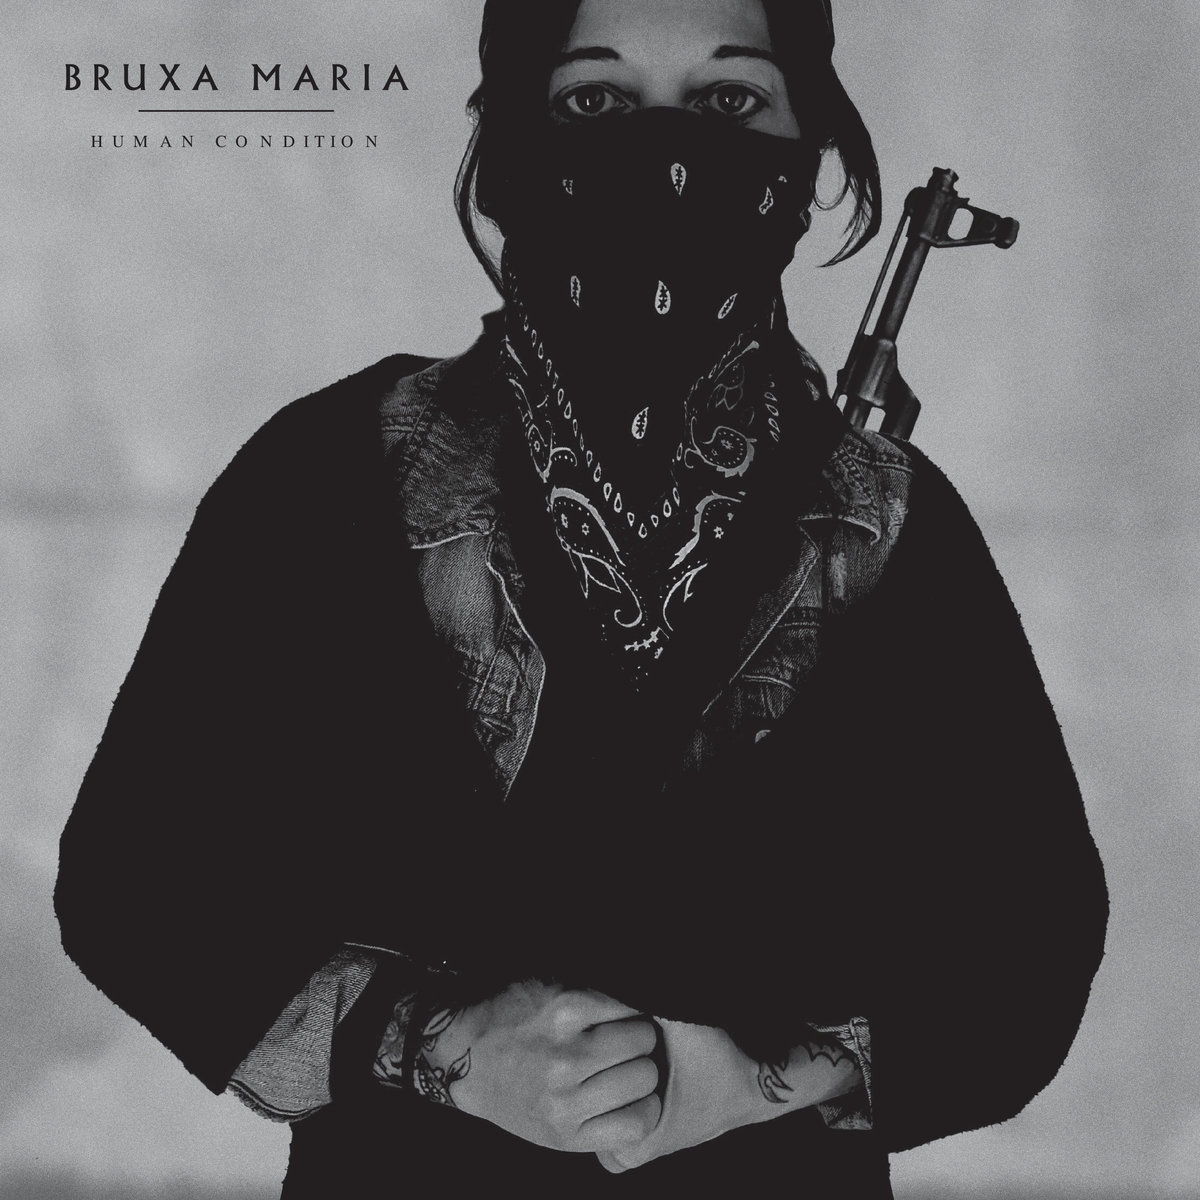 BRUXA MARIA - HUMAN CONDITION (EXTREME ULTIMATE, 2016)